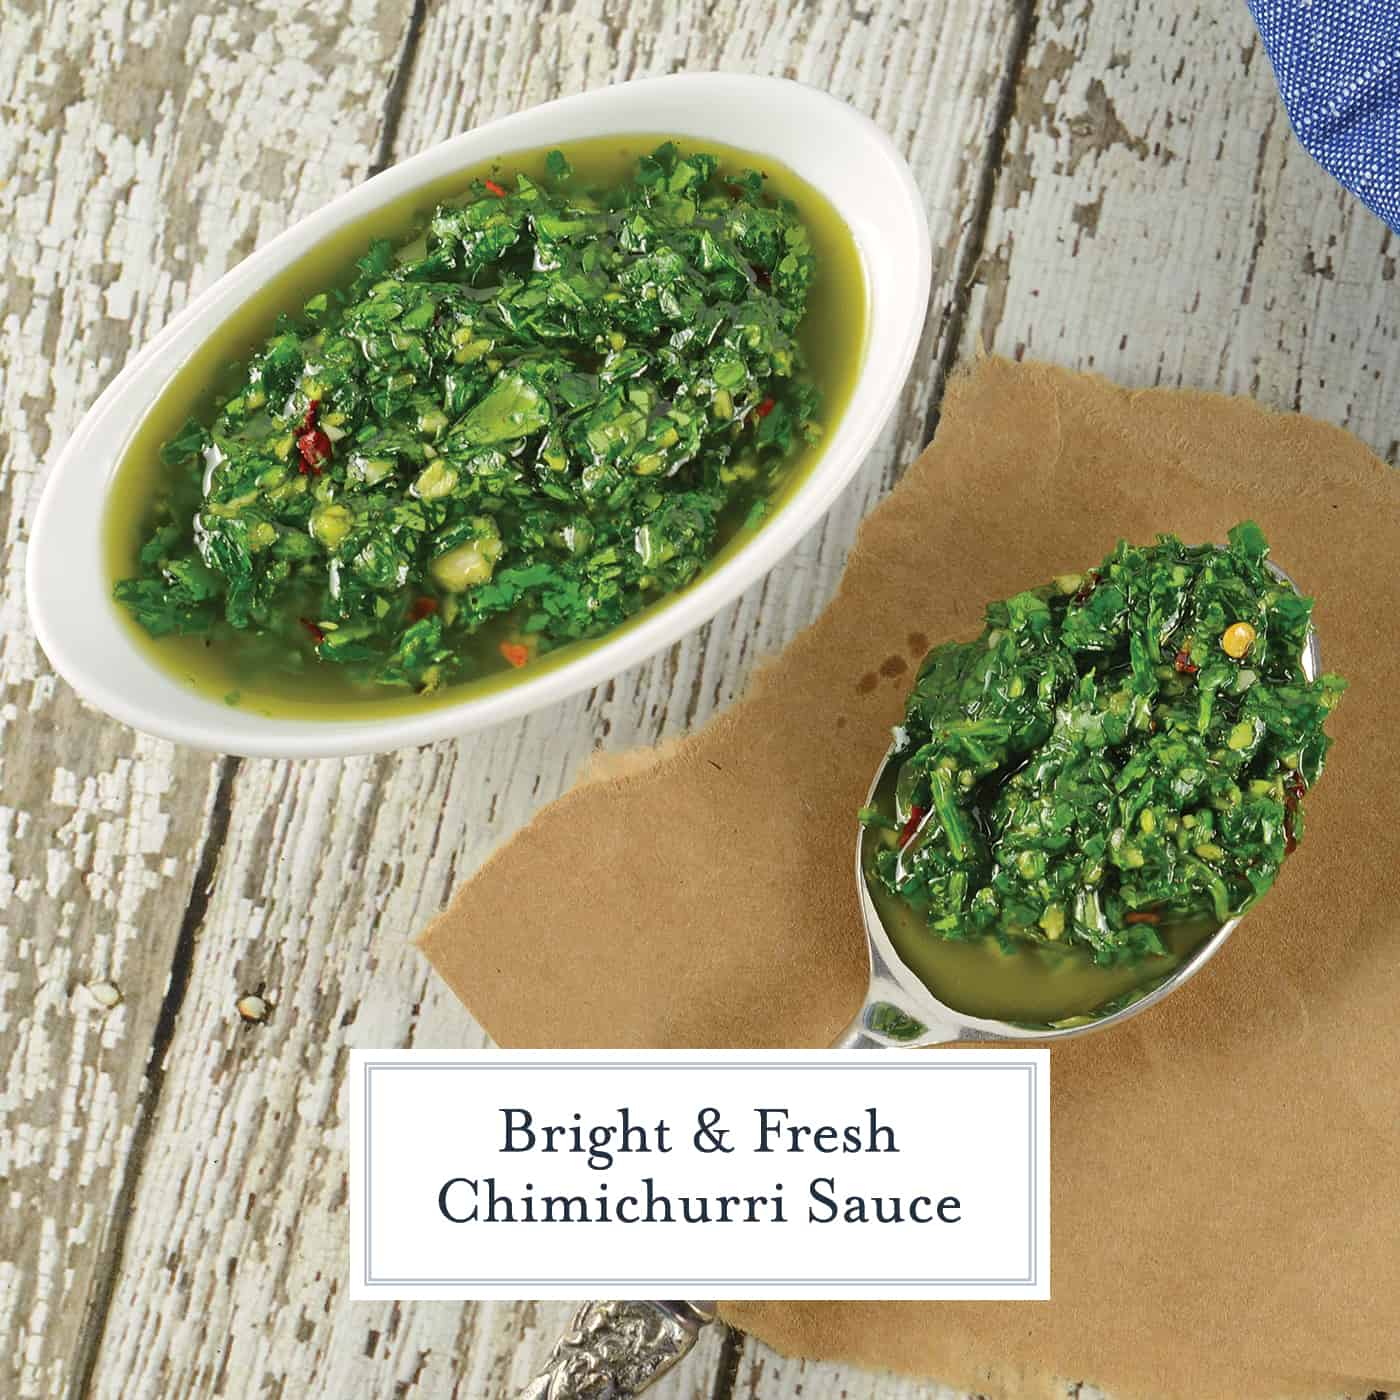 Authentic Chimichurri Sauce is easy to make and doubles as a marinade and sauce. Traditional chimichurri ingredients will flavor any dish! #chimichurrisauce www.savoryexperiments.com